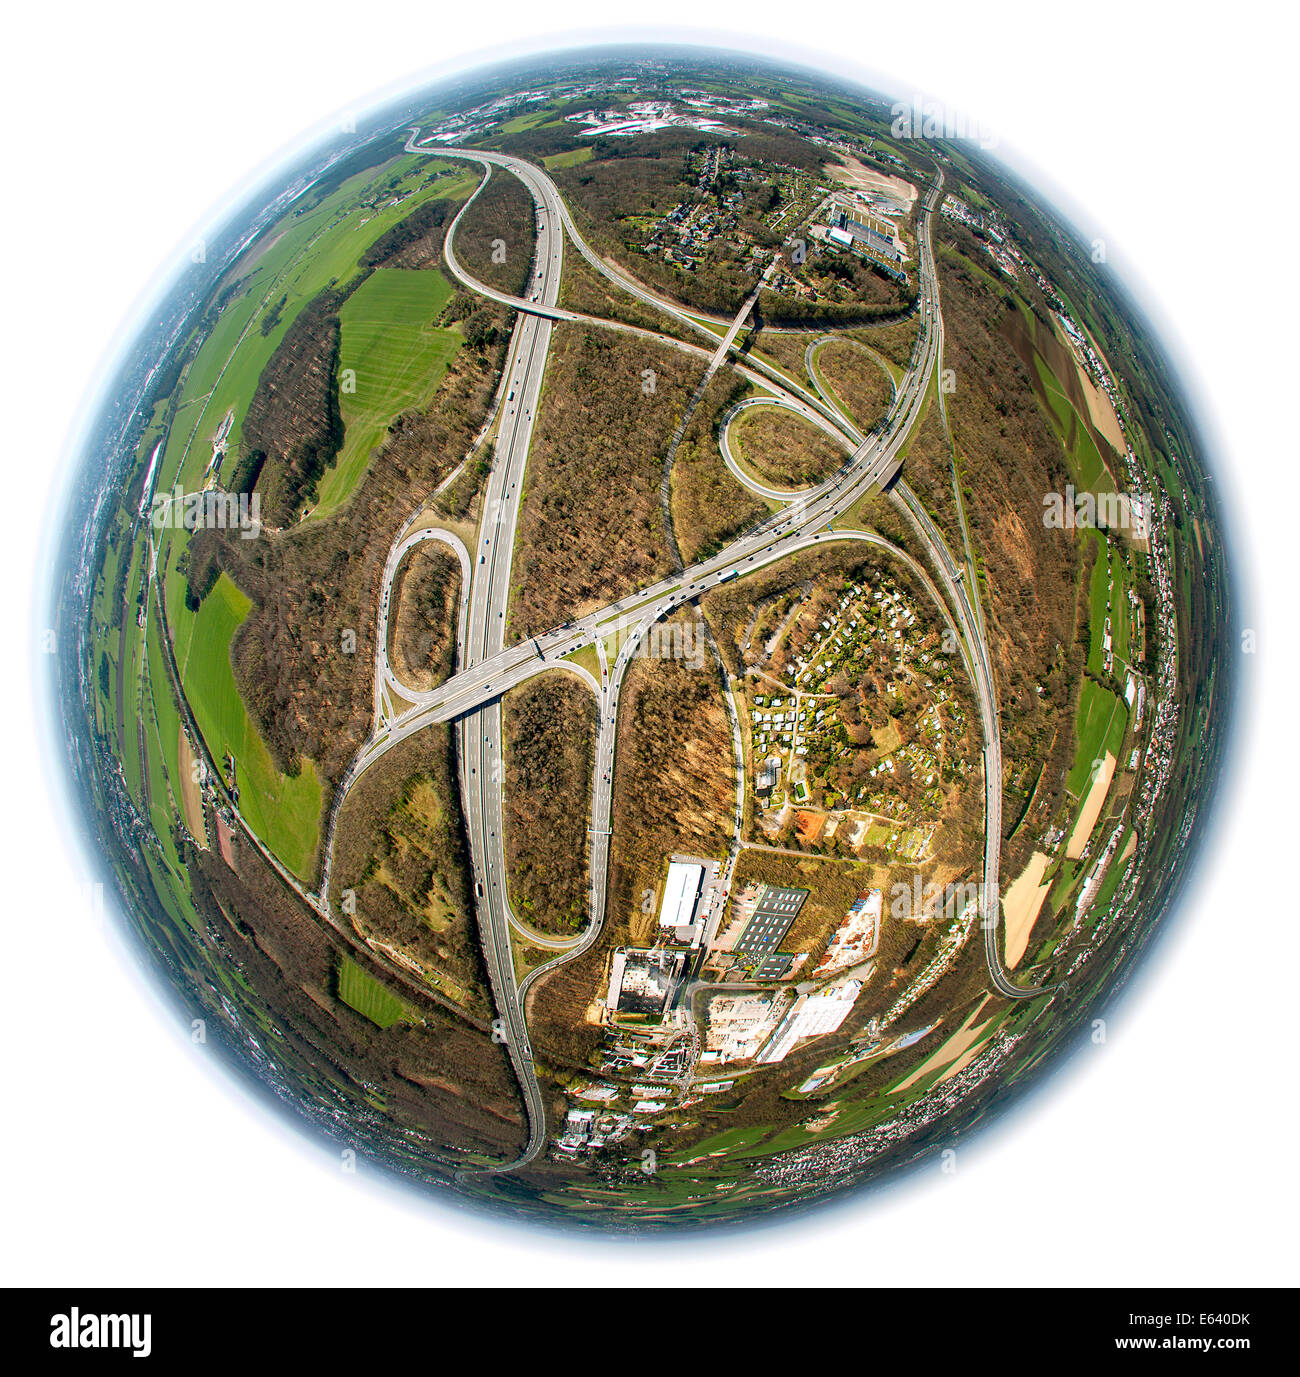 Aerial view shot with a fisheye lens, motorway junction of A1, A43 and A46 motorway, near Haßlinghausen, Sprockhövel - Stock Image